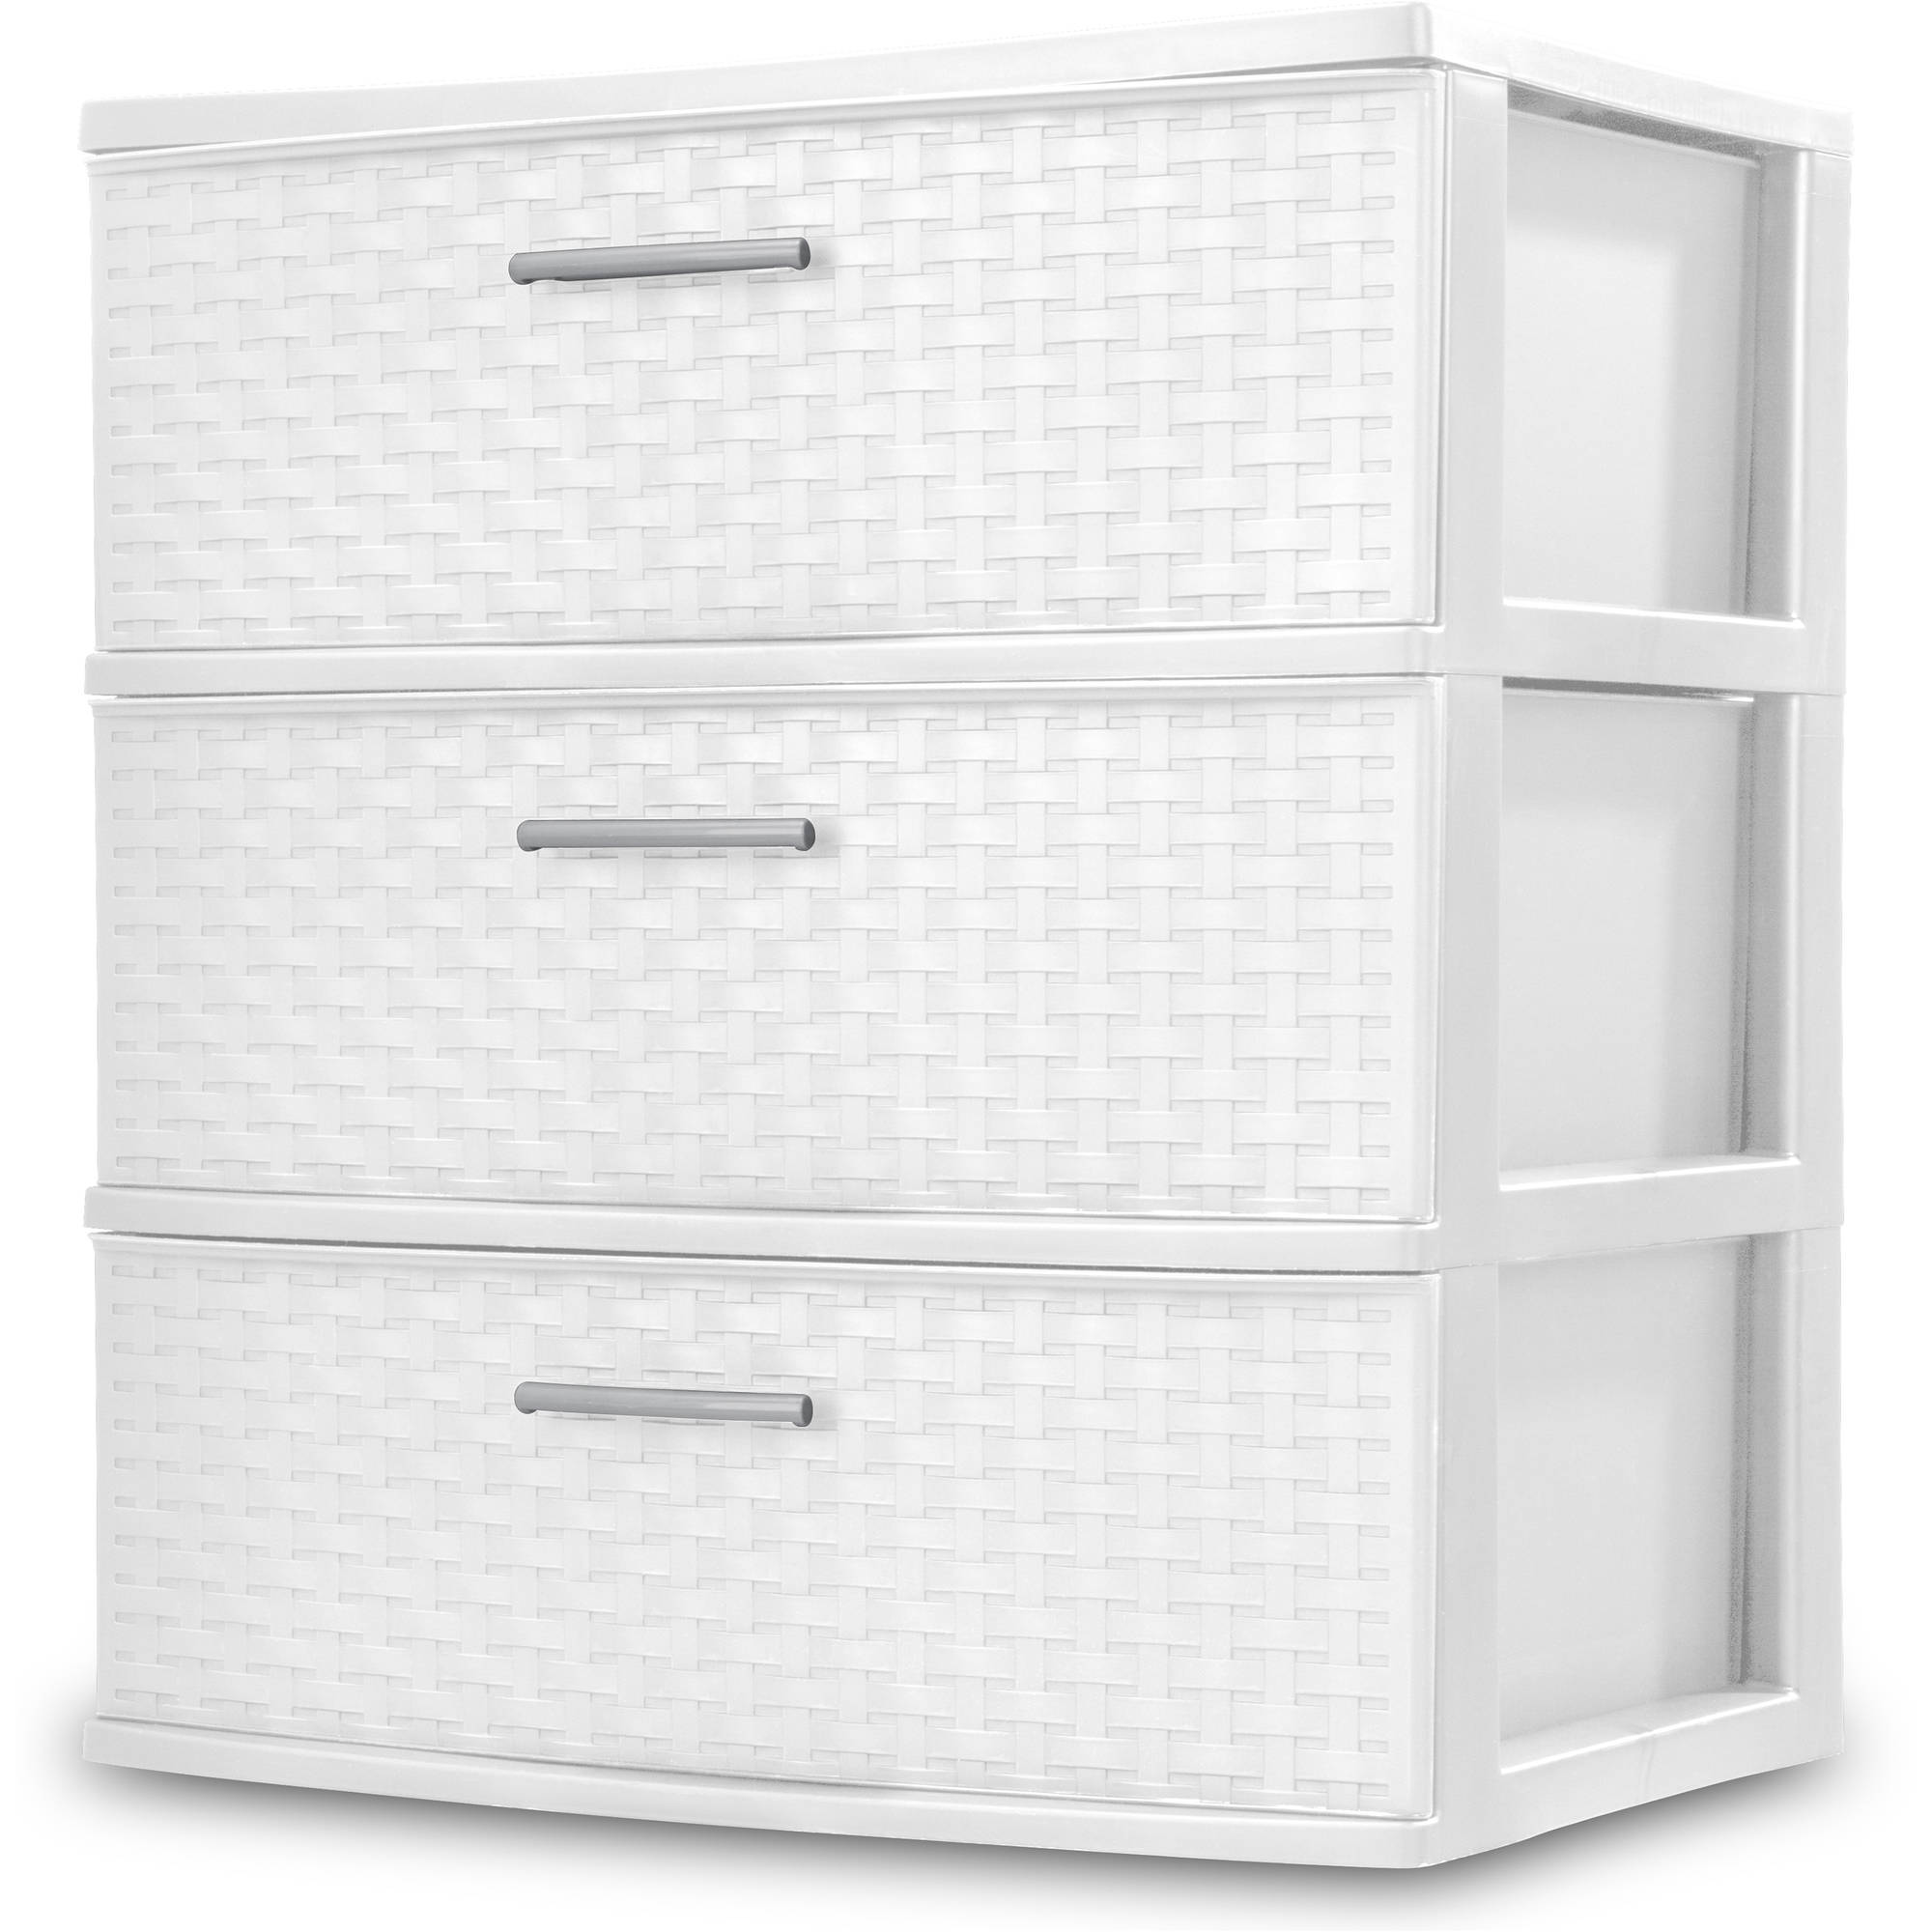 Sterilite 3-Drawer Wide Weave Tower, White